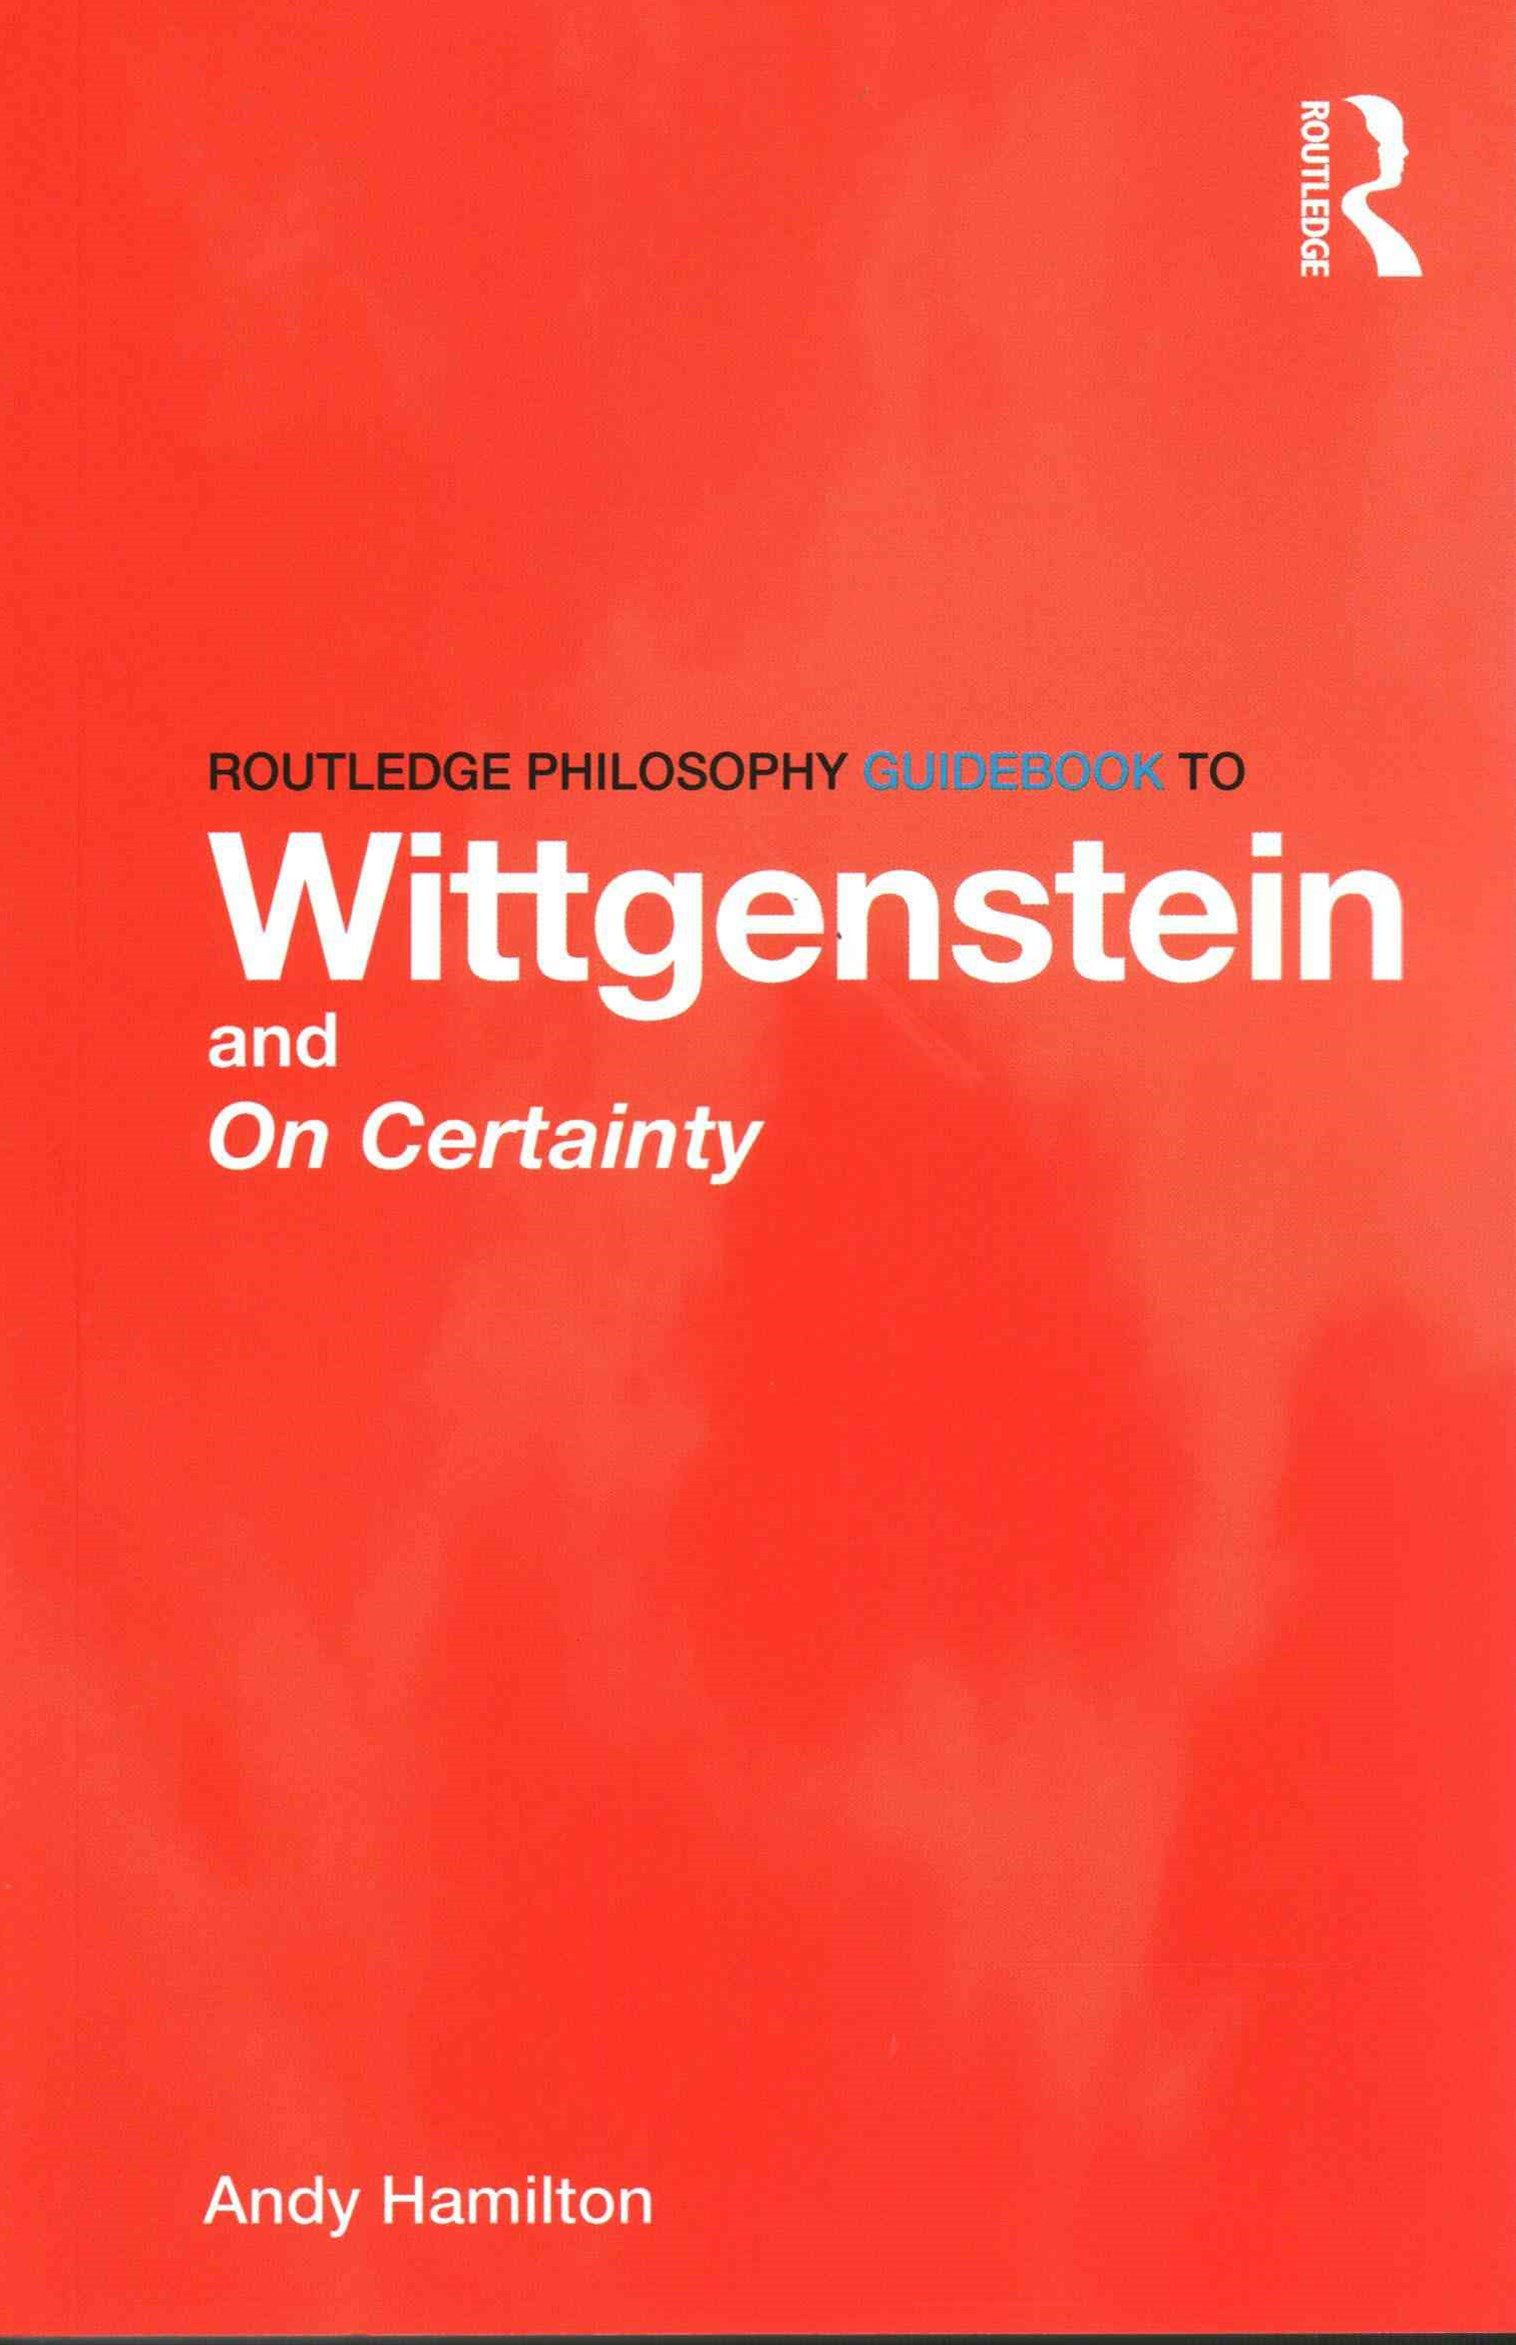 Routledge Philosophy Guidebook to Wittgenstein and &quote;On Certainty&quote;